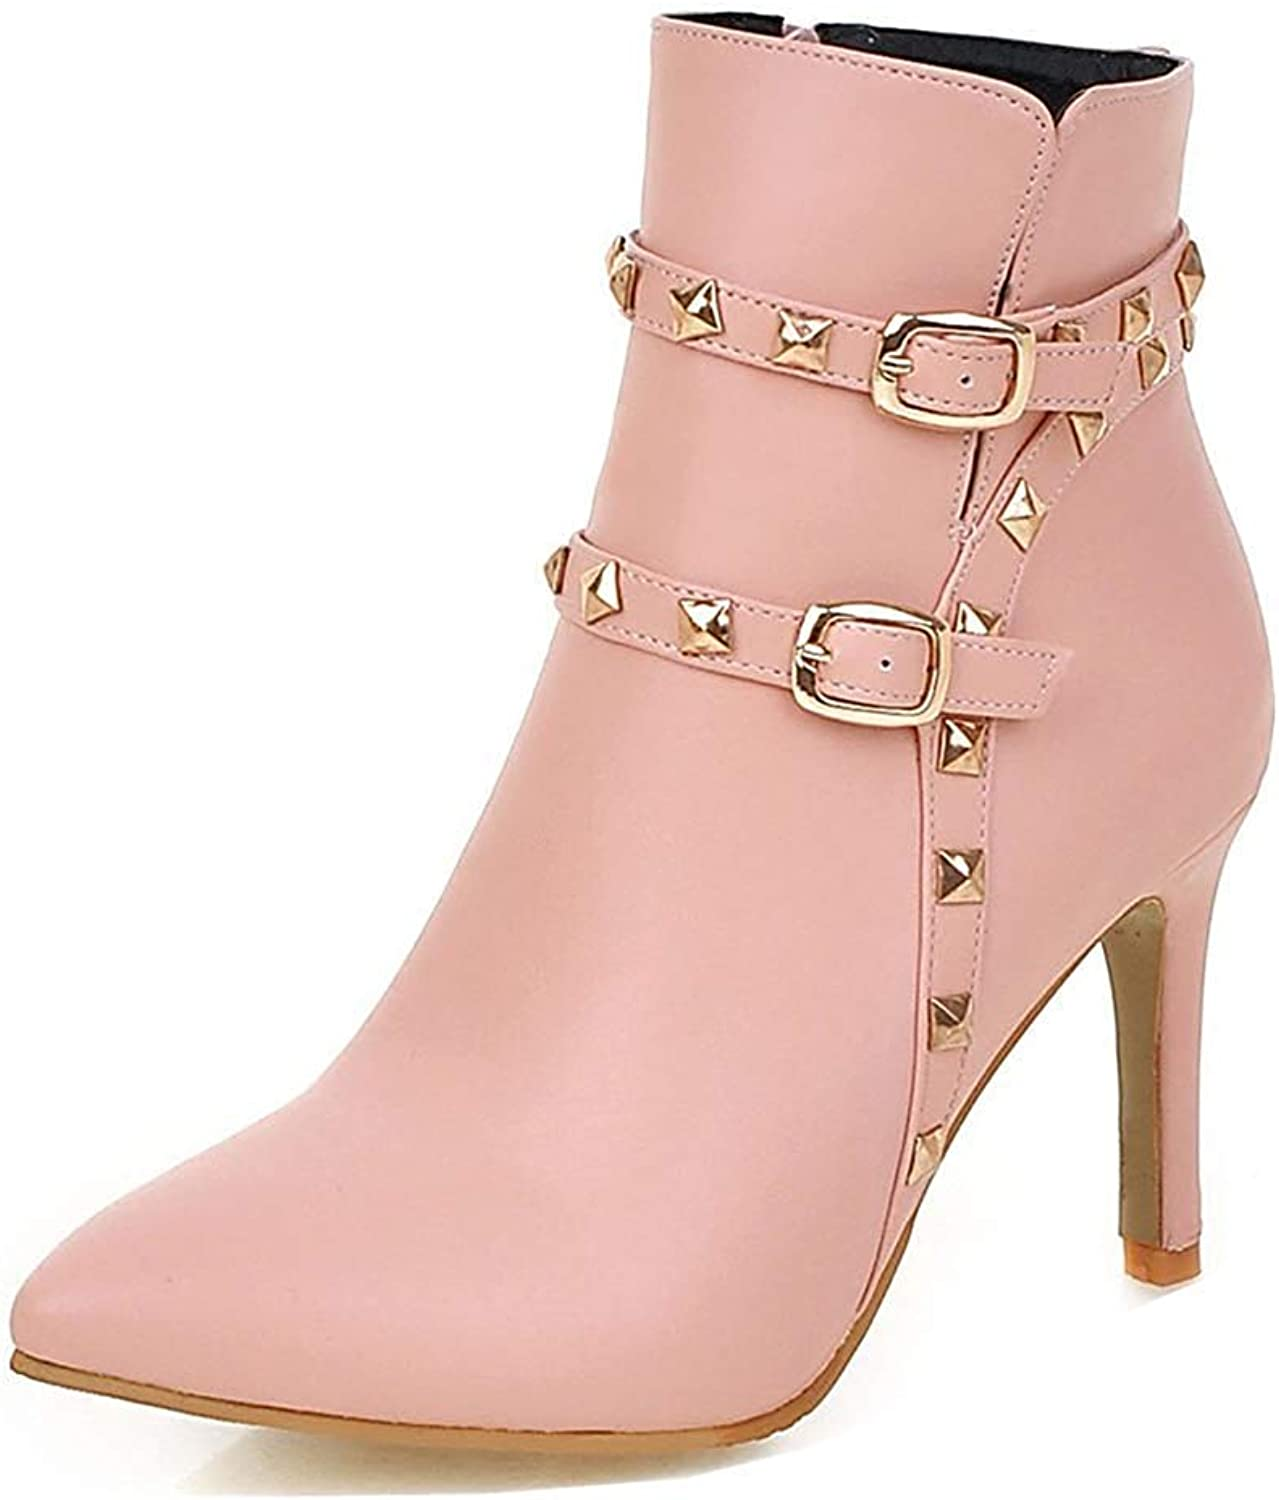 Unm Women's Studded Buckle Strap Stiletto High Heel Short Boots Pointed Toe Dress Ankle Booties with Zipper